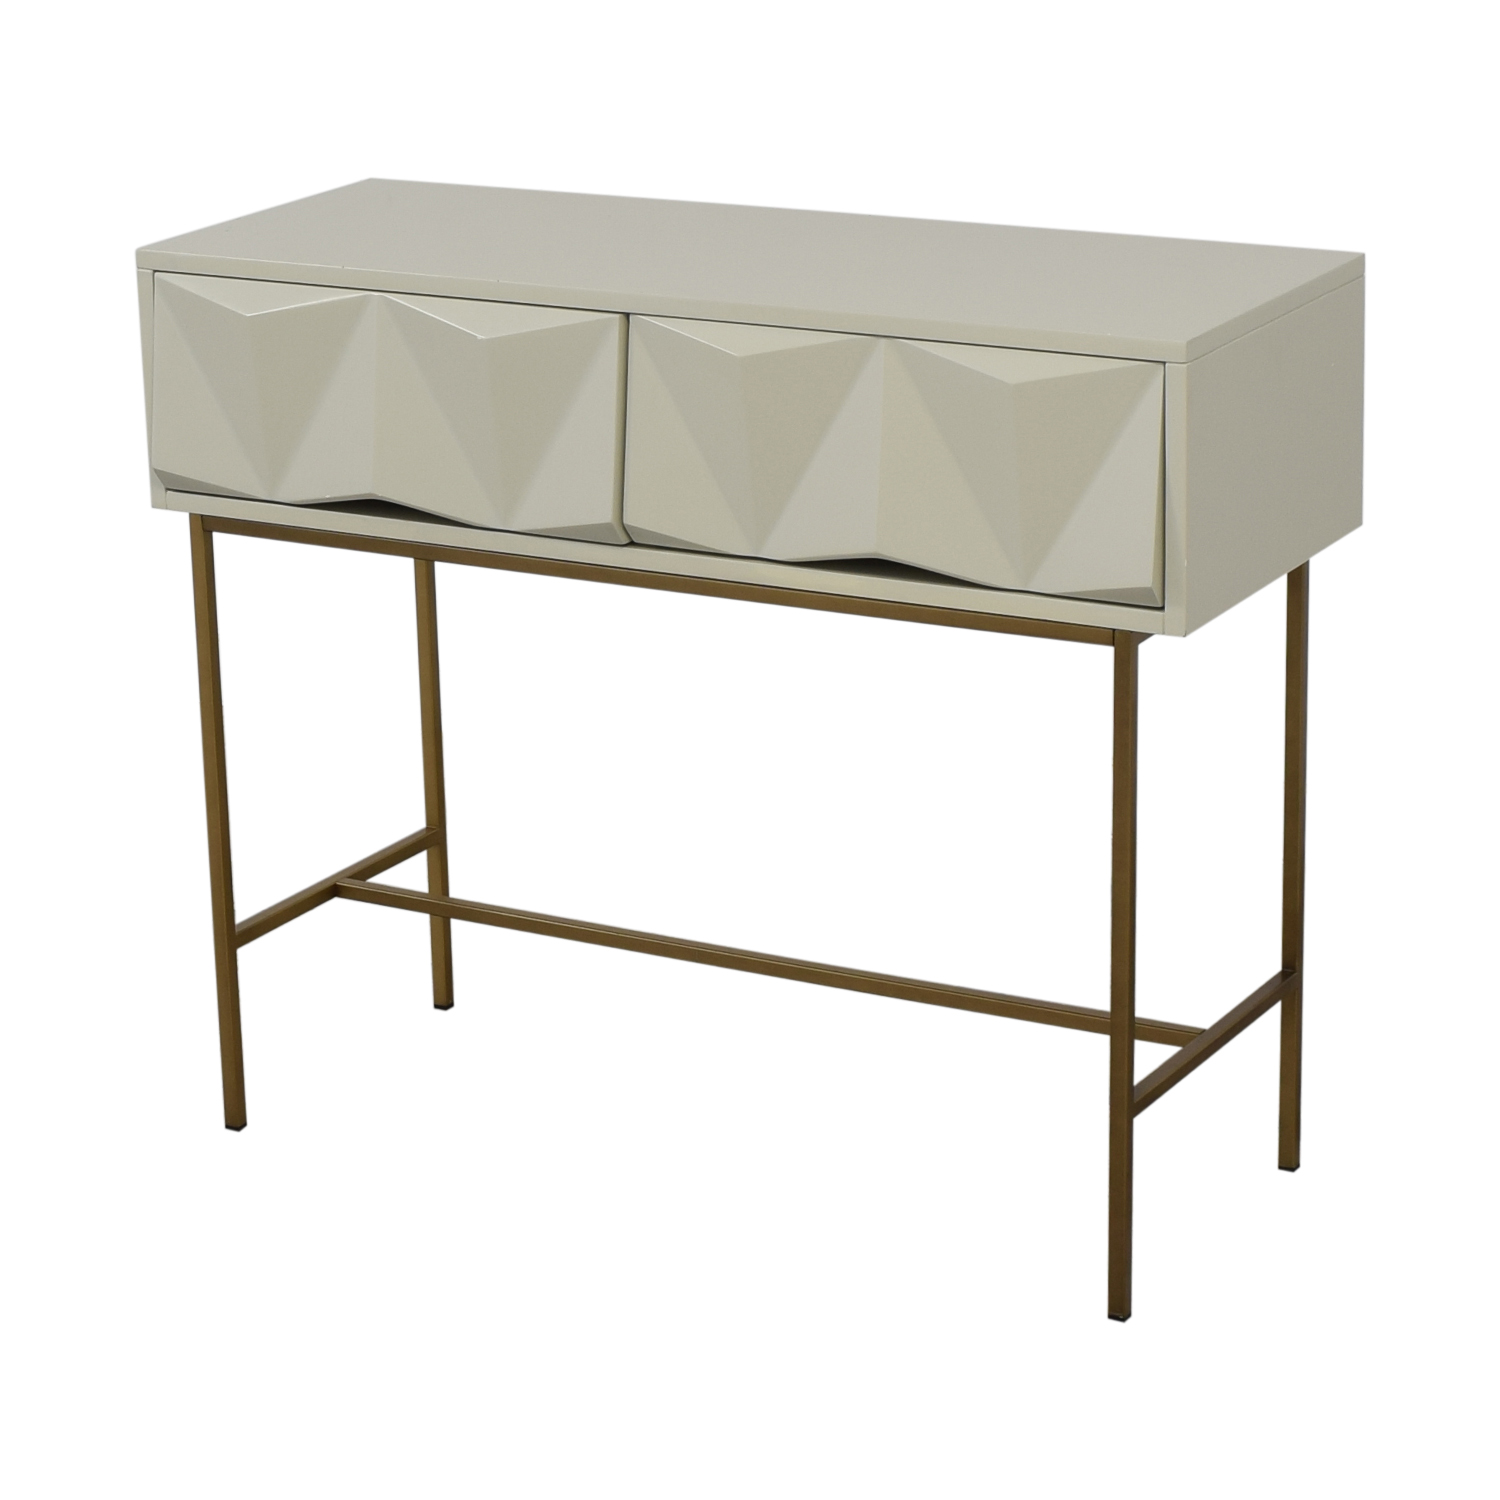 West Elm West Elm Sculpted Geo Console used